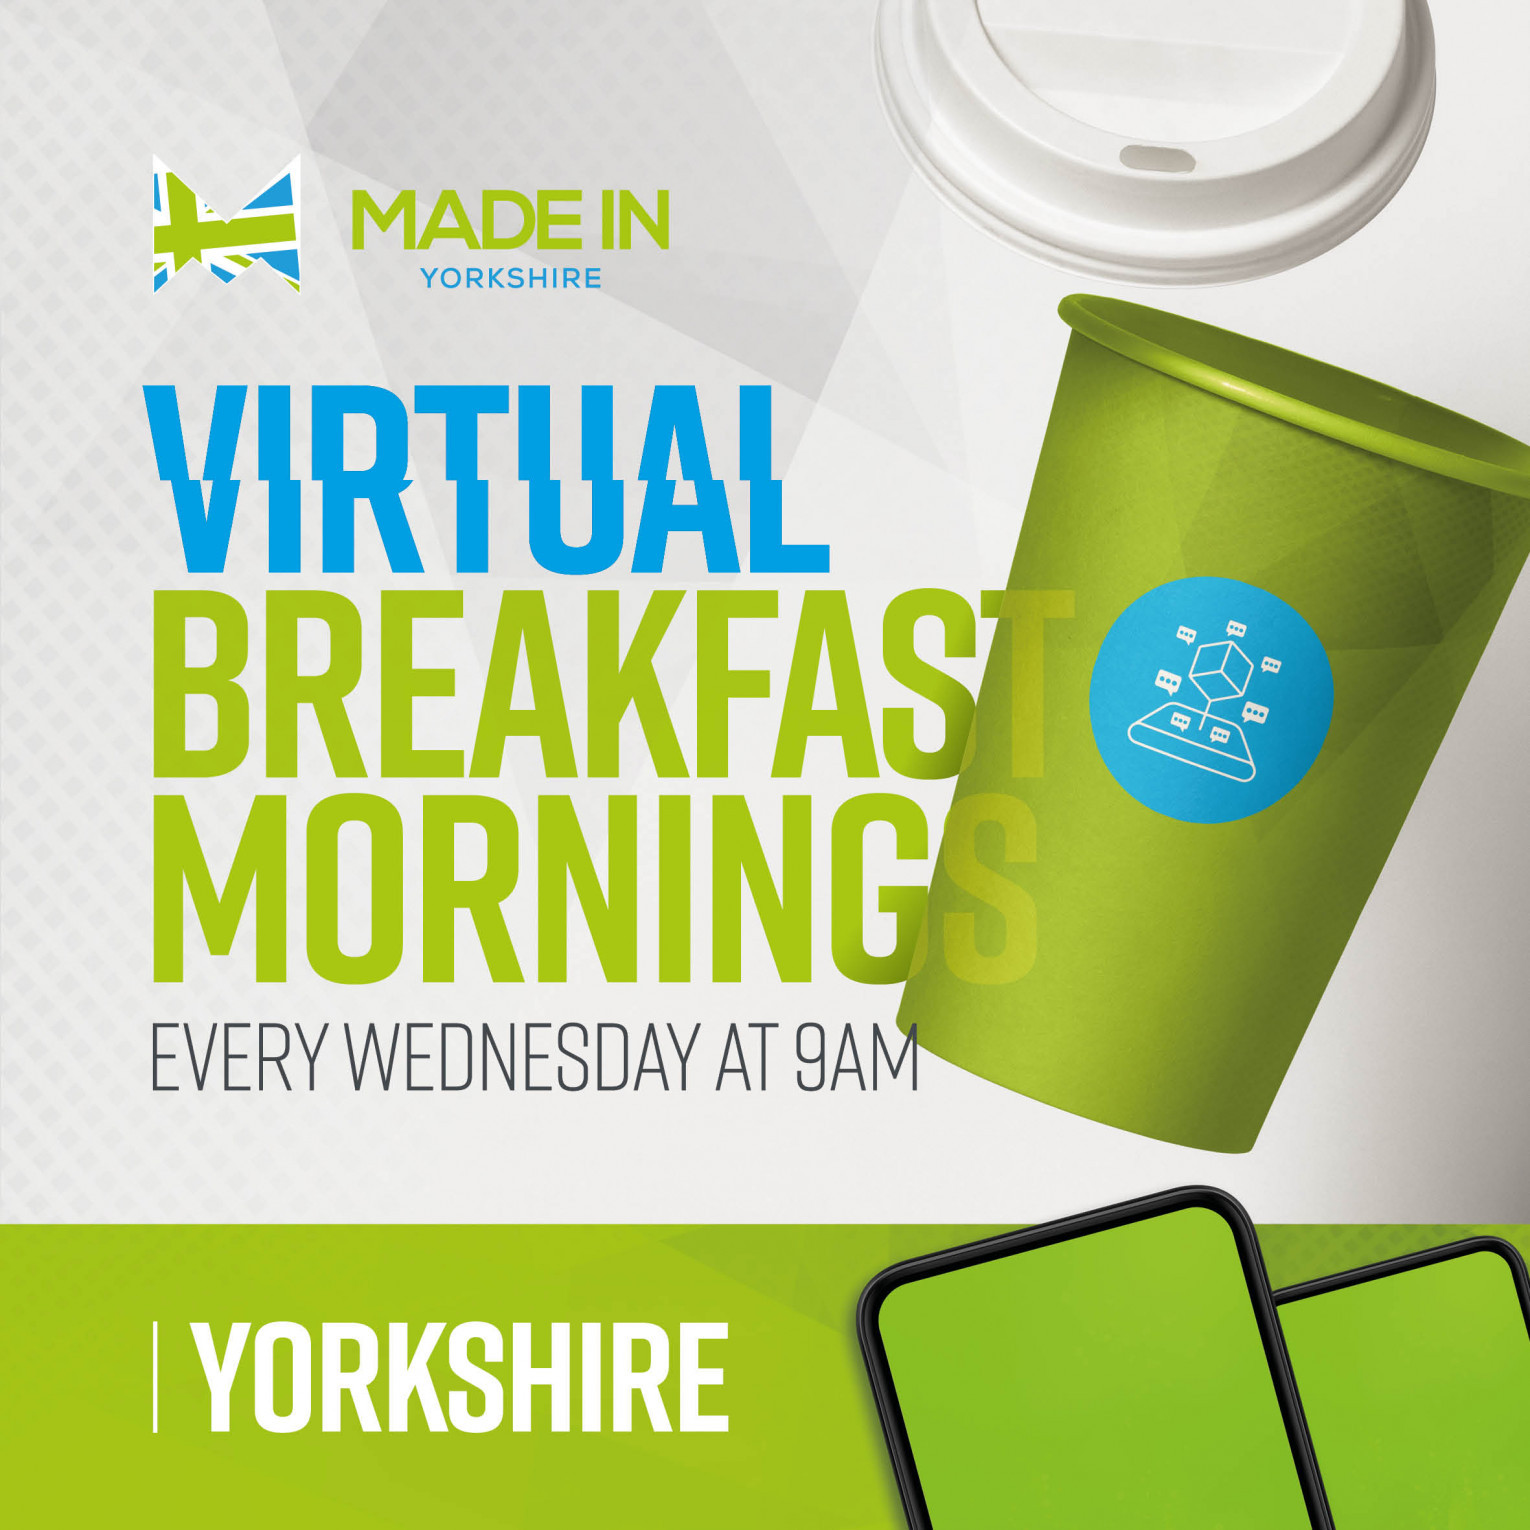 Made in Yorkshire Virtual Breakfast Morning with PPG Architectural Coatings